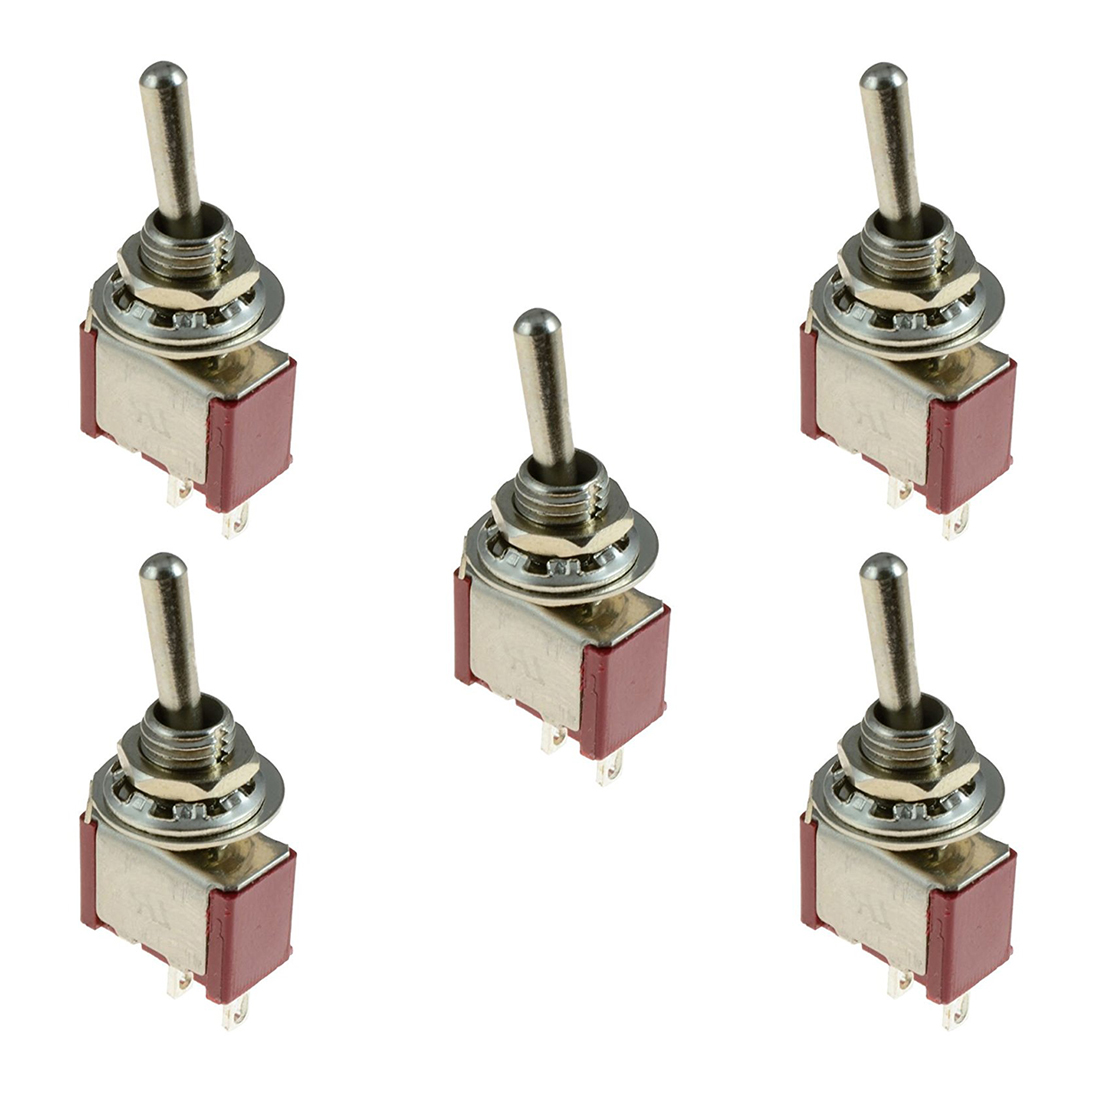 5 X On/Off Small Toggle Switch Miniature SPST 6mm - AC250V 3A 120V 5A